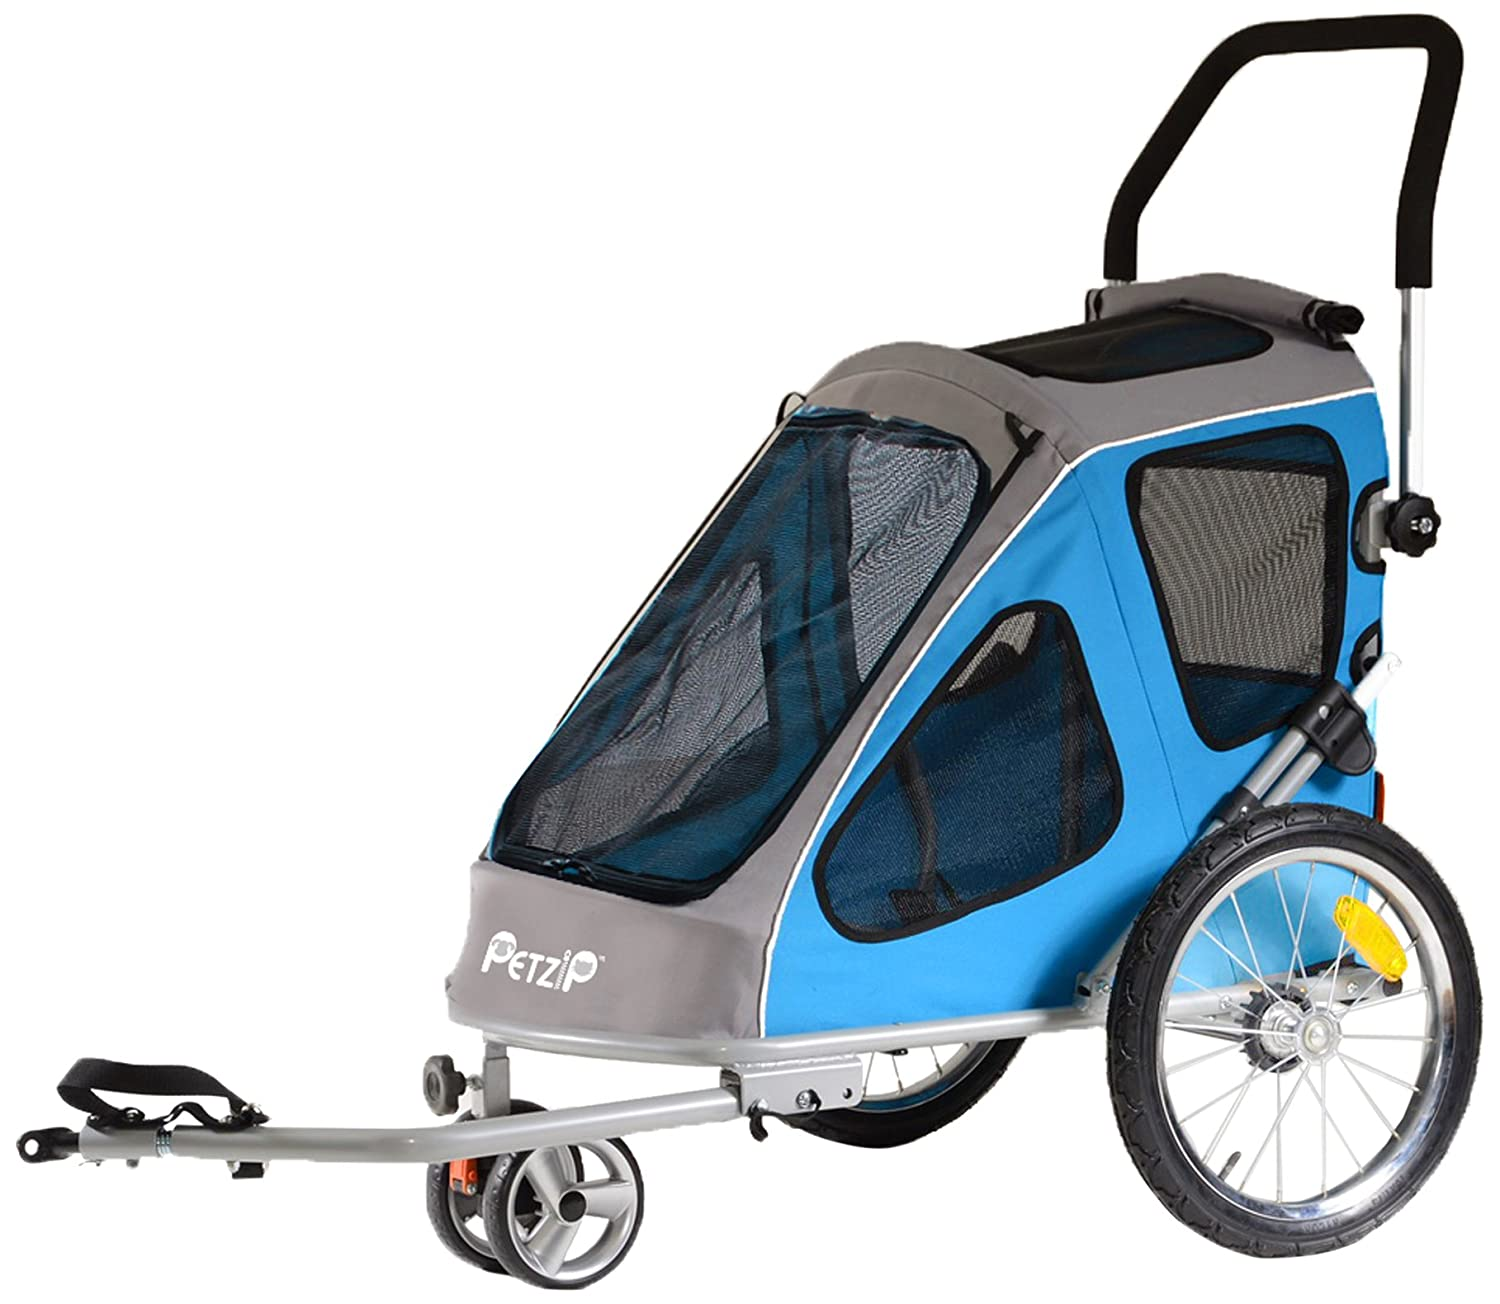 Petzip Zoom Trailer Stroller, Blue